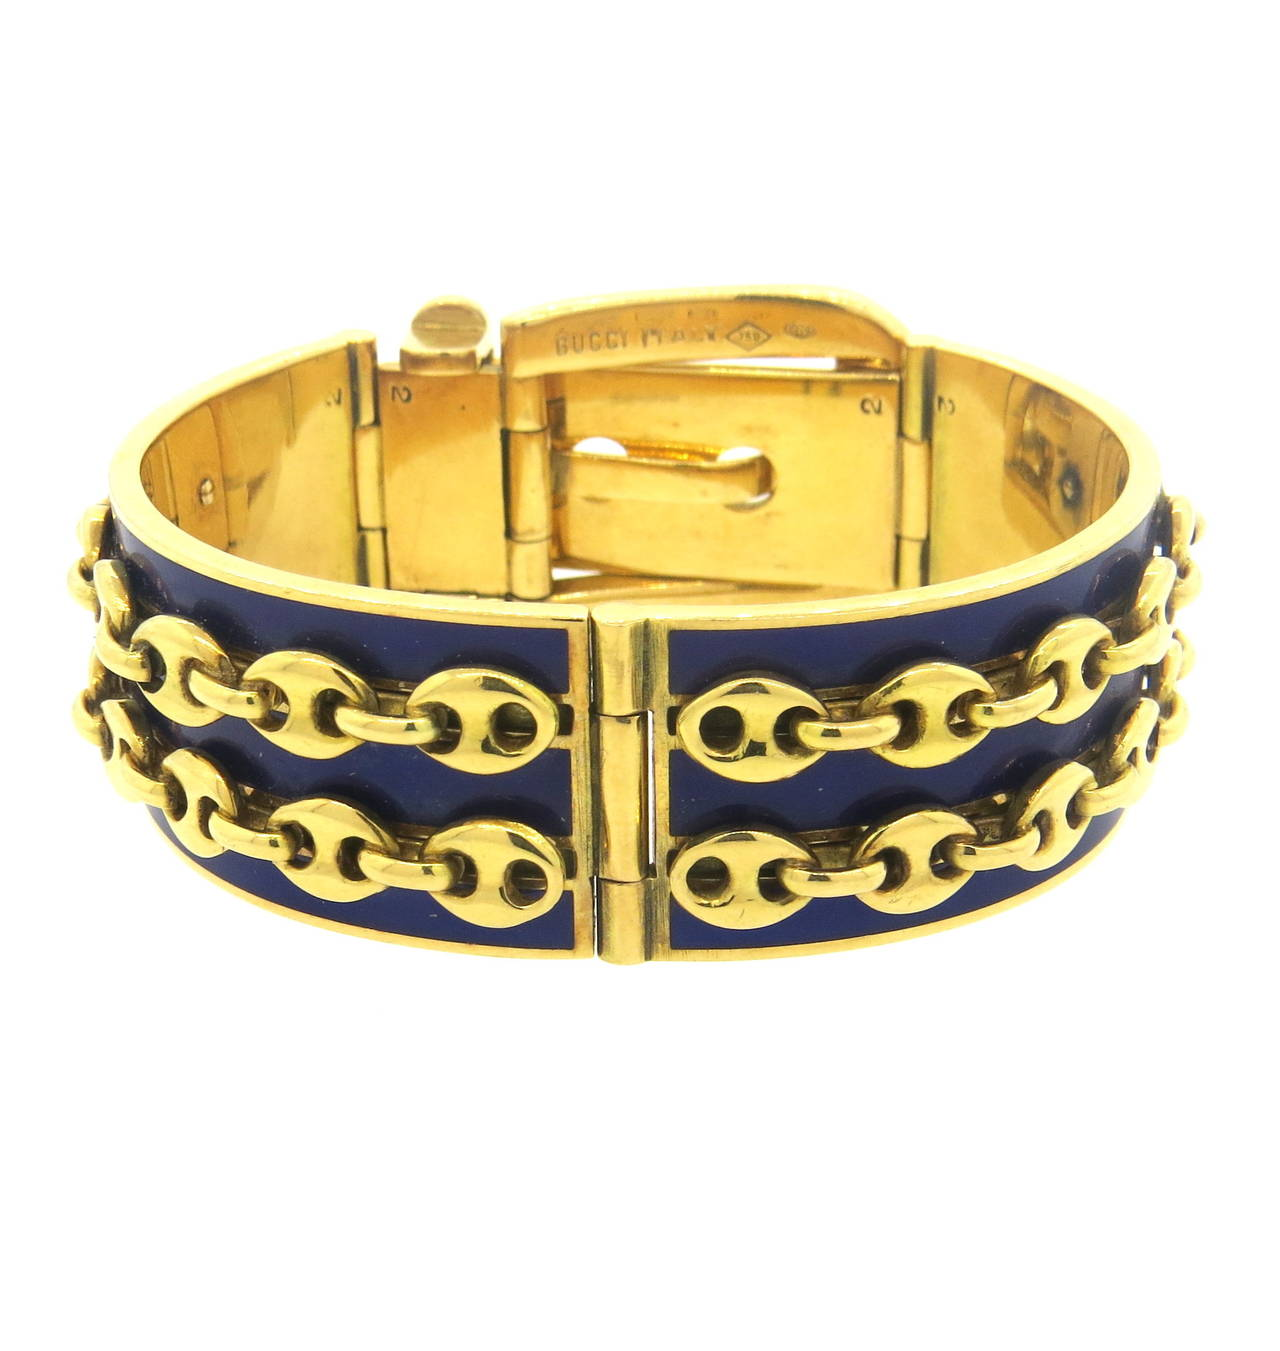 Gucci Blue Enamel Gold Buckle Bracelet In Excellent Condition For Sale In Lahaska, PA